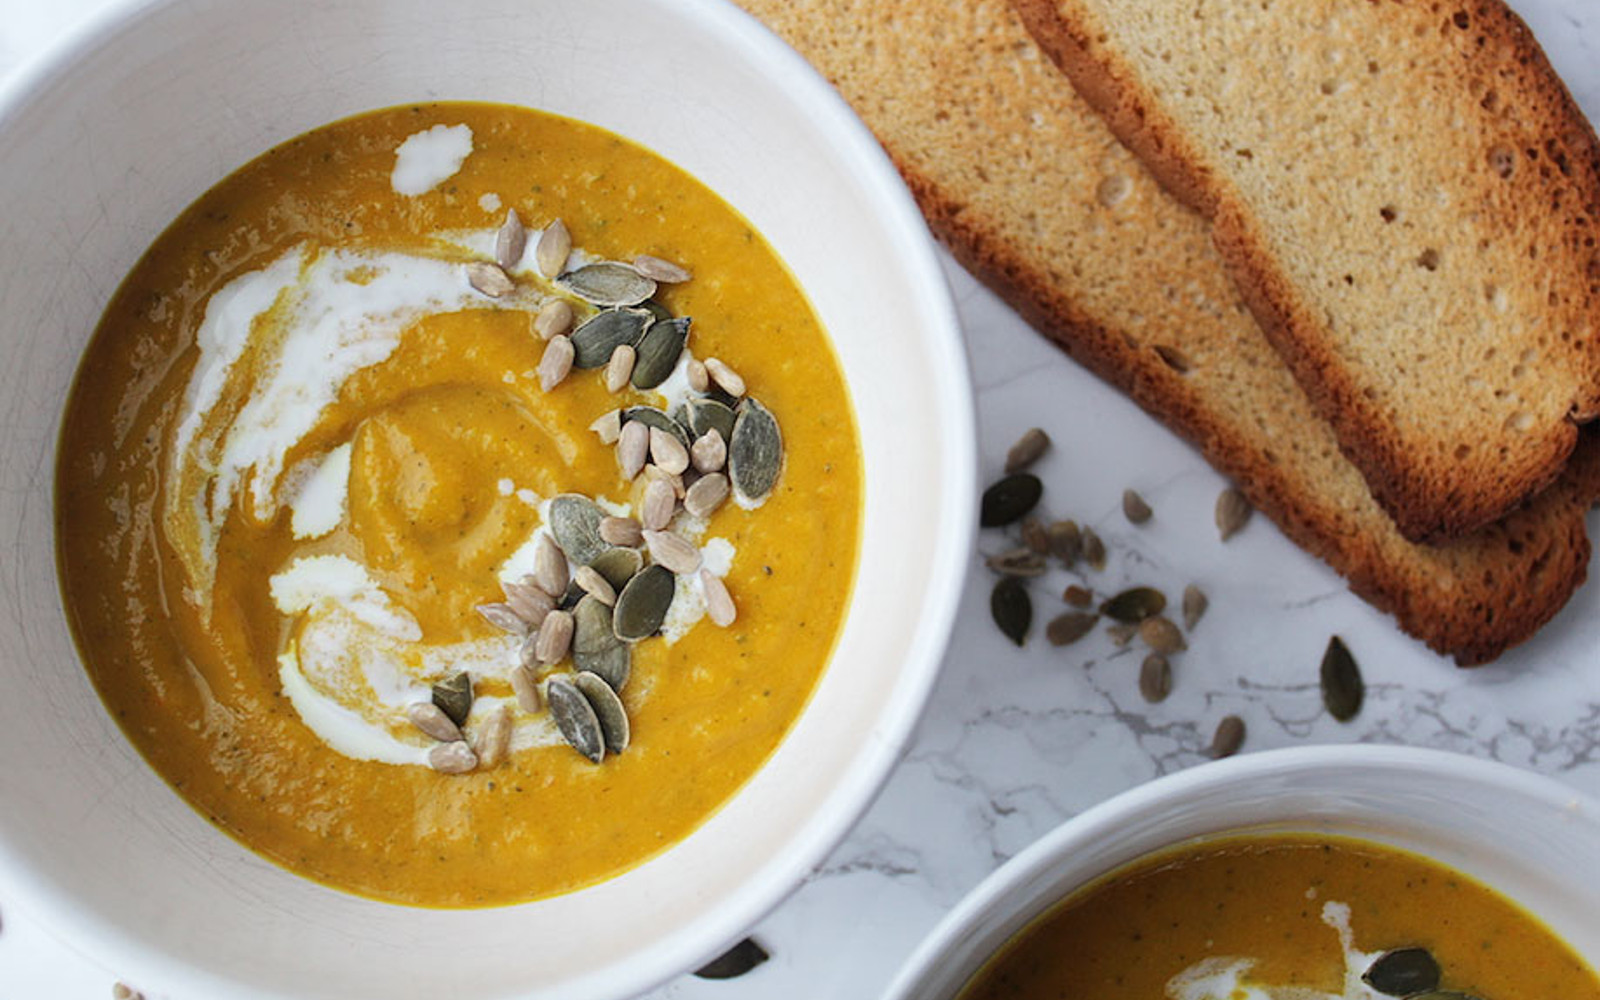 Vegan Gluten-Free Curried Coconut and Butternut Squash Soup with cream and pumpkin seeds